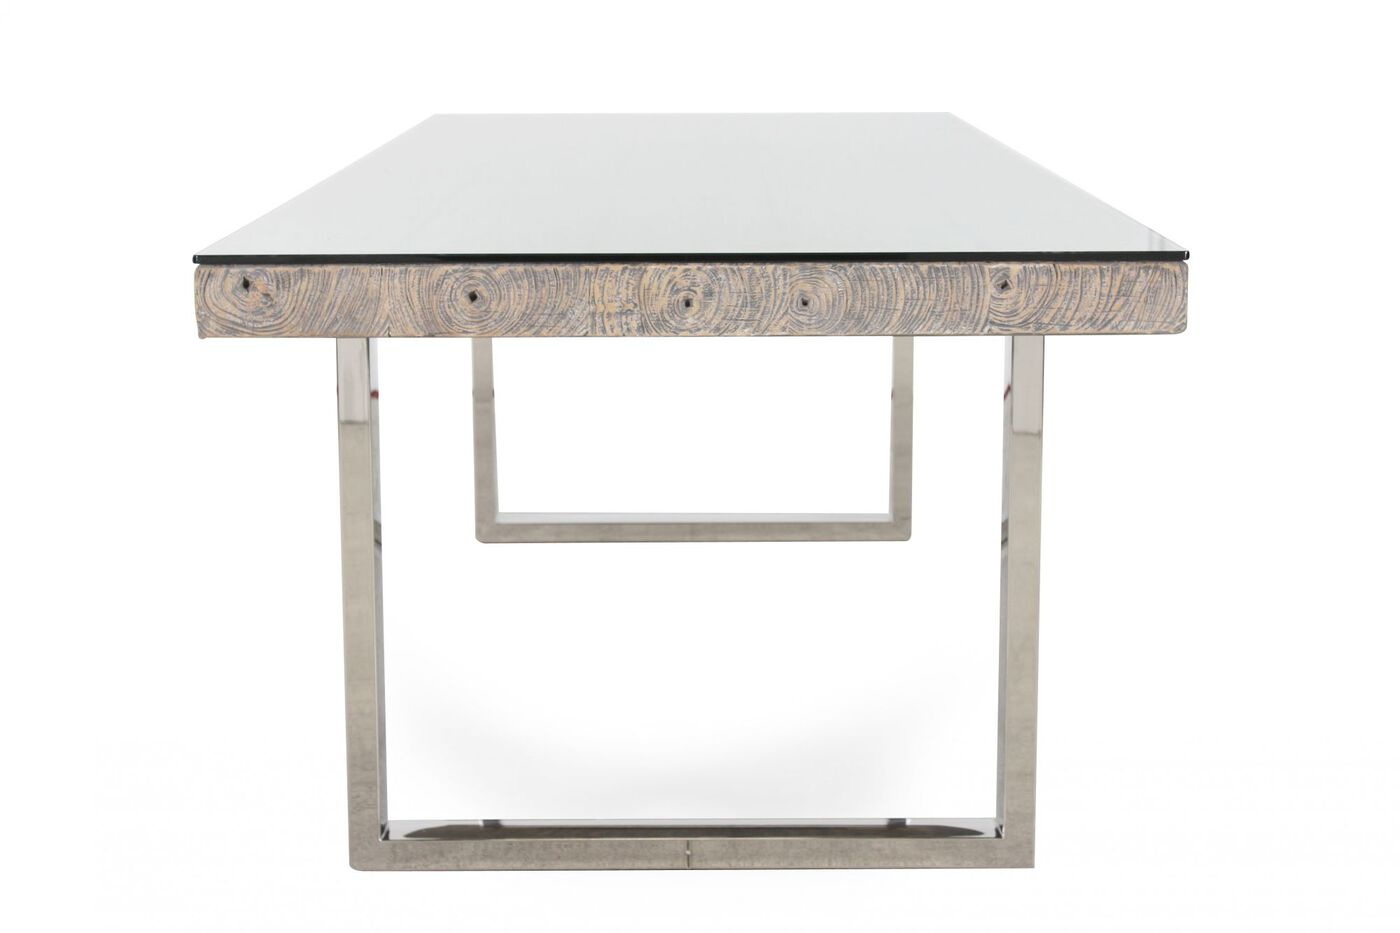 ... Bernhardt Interiors Henley Glass Dining Table ... - Bernhardt Interiors Henley Glass Dining Table Mathis Brothers